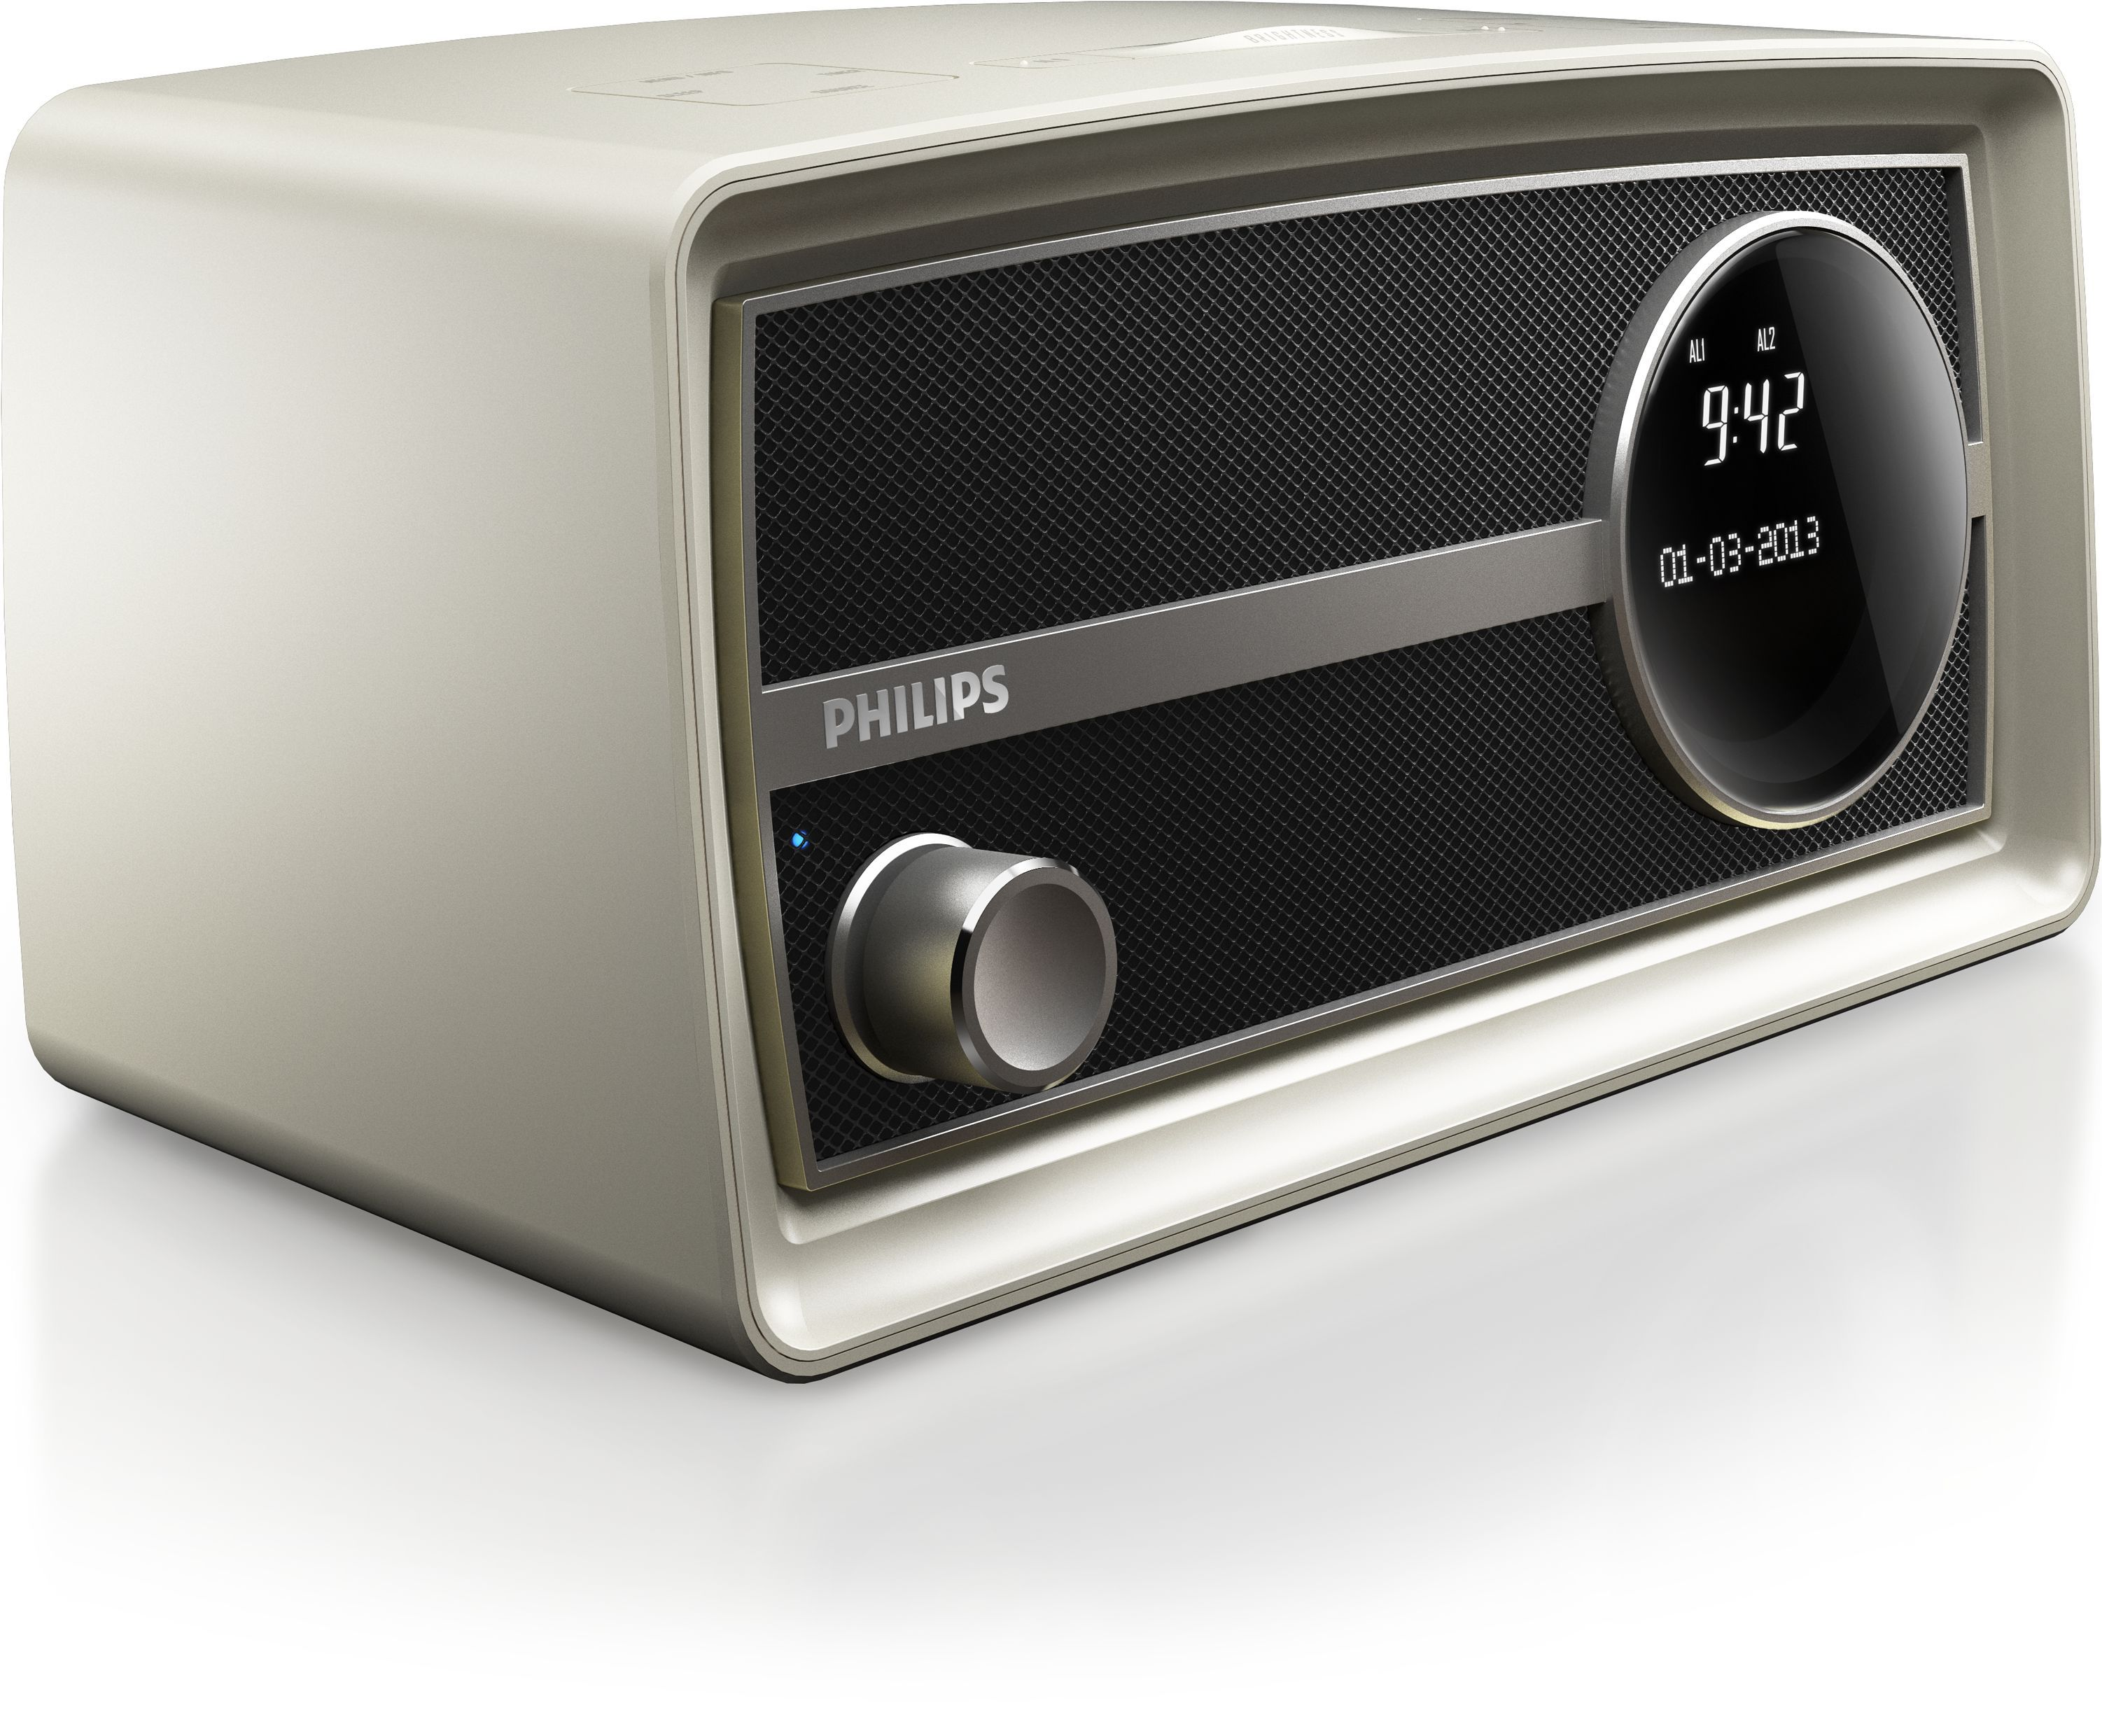 philips retro radio for the home design inspiration. Black Bedroom Furniture Sets. Home Design Ideas